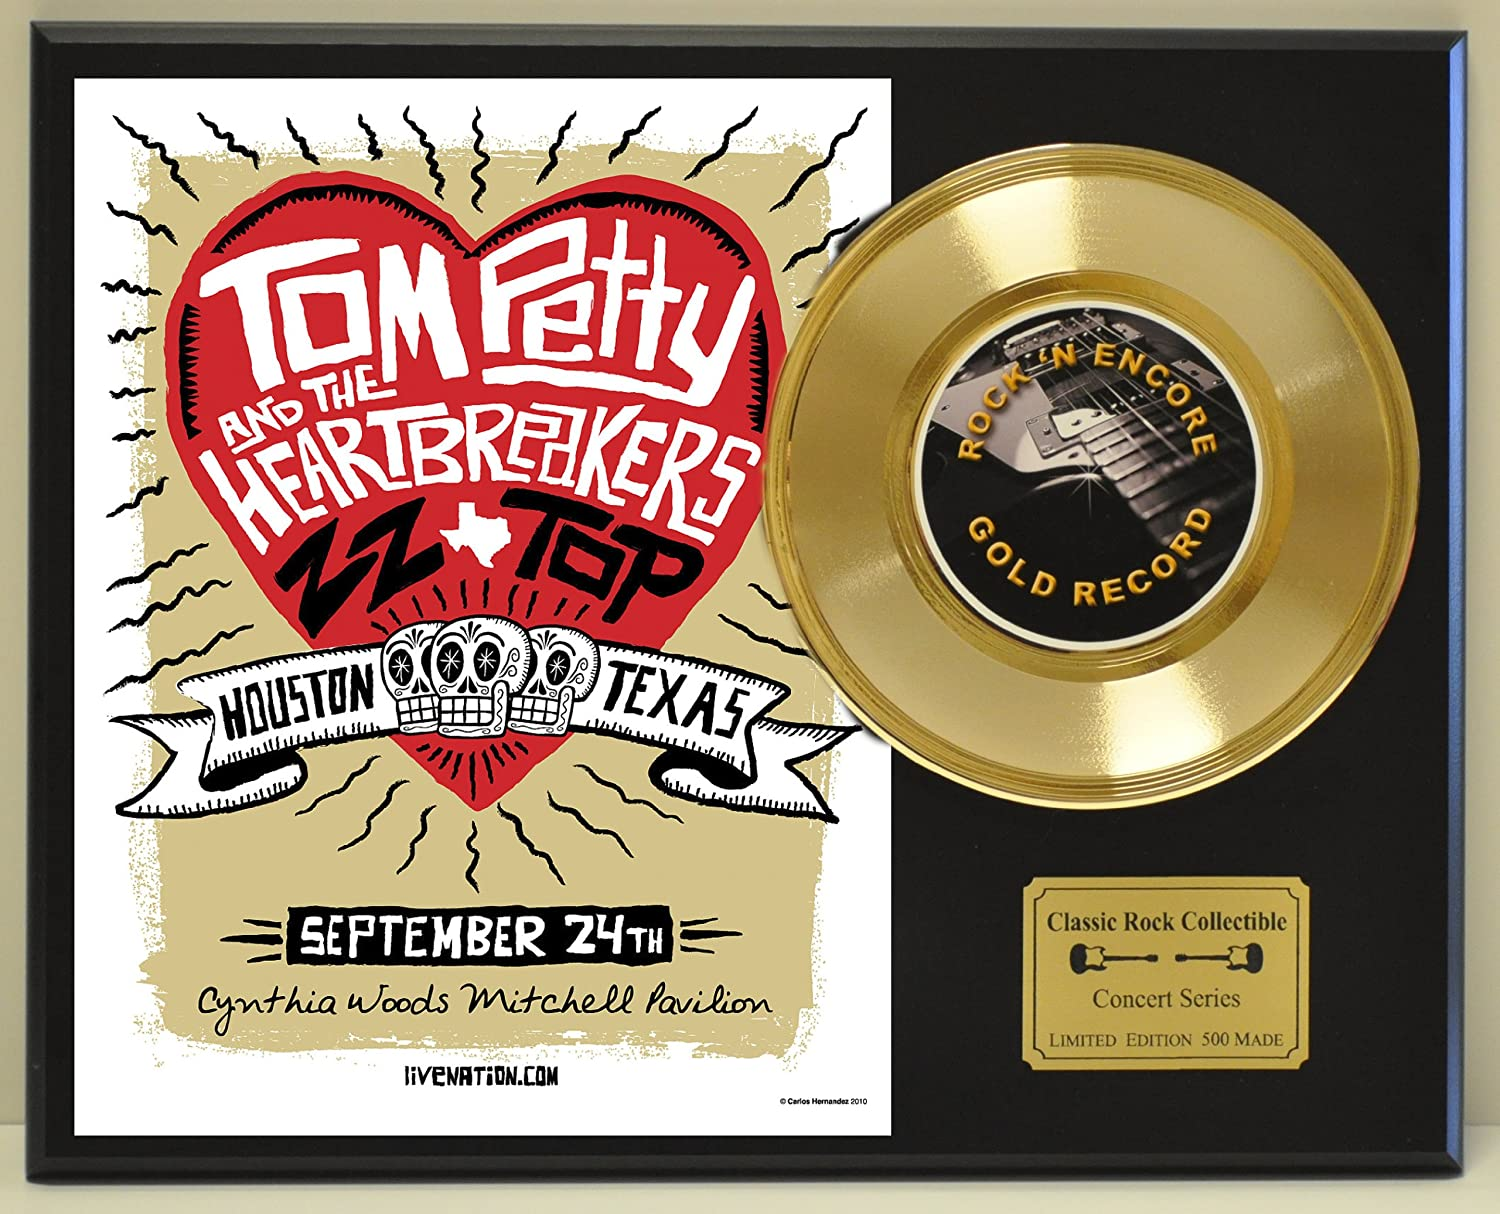 TOM PETTY Limited Edition Gold 45 Record Display. Only 500 made. Limited quanities. FREE US SHIPPING by Classic Rock Collectibles